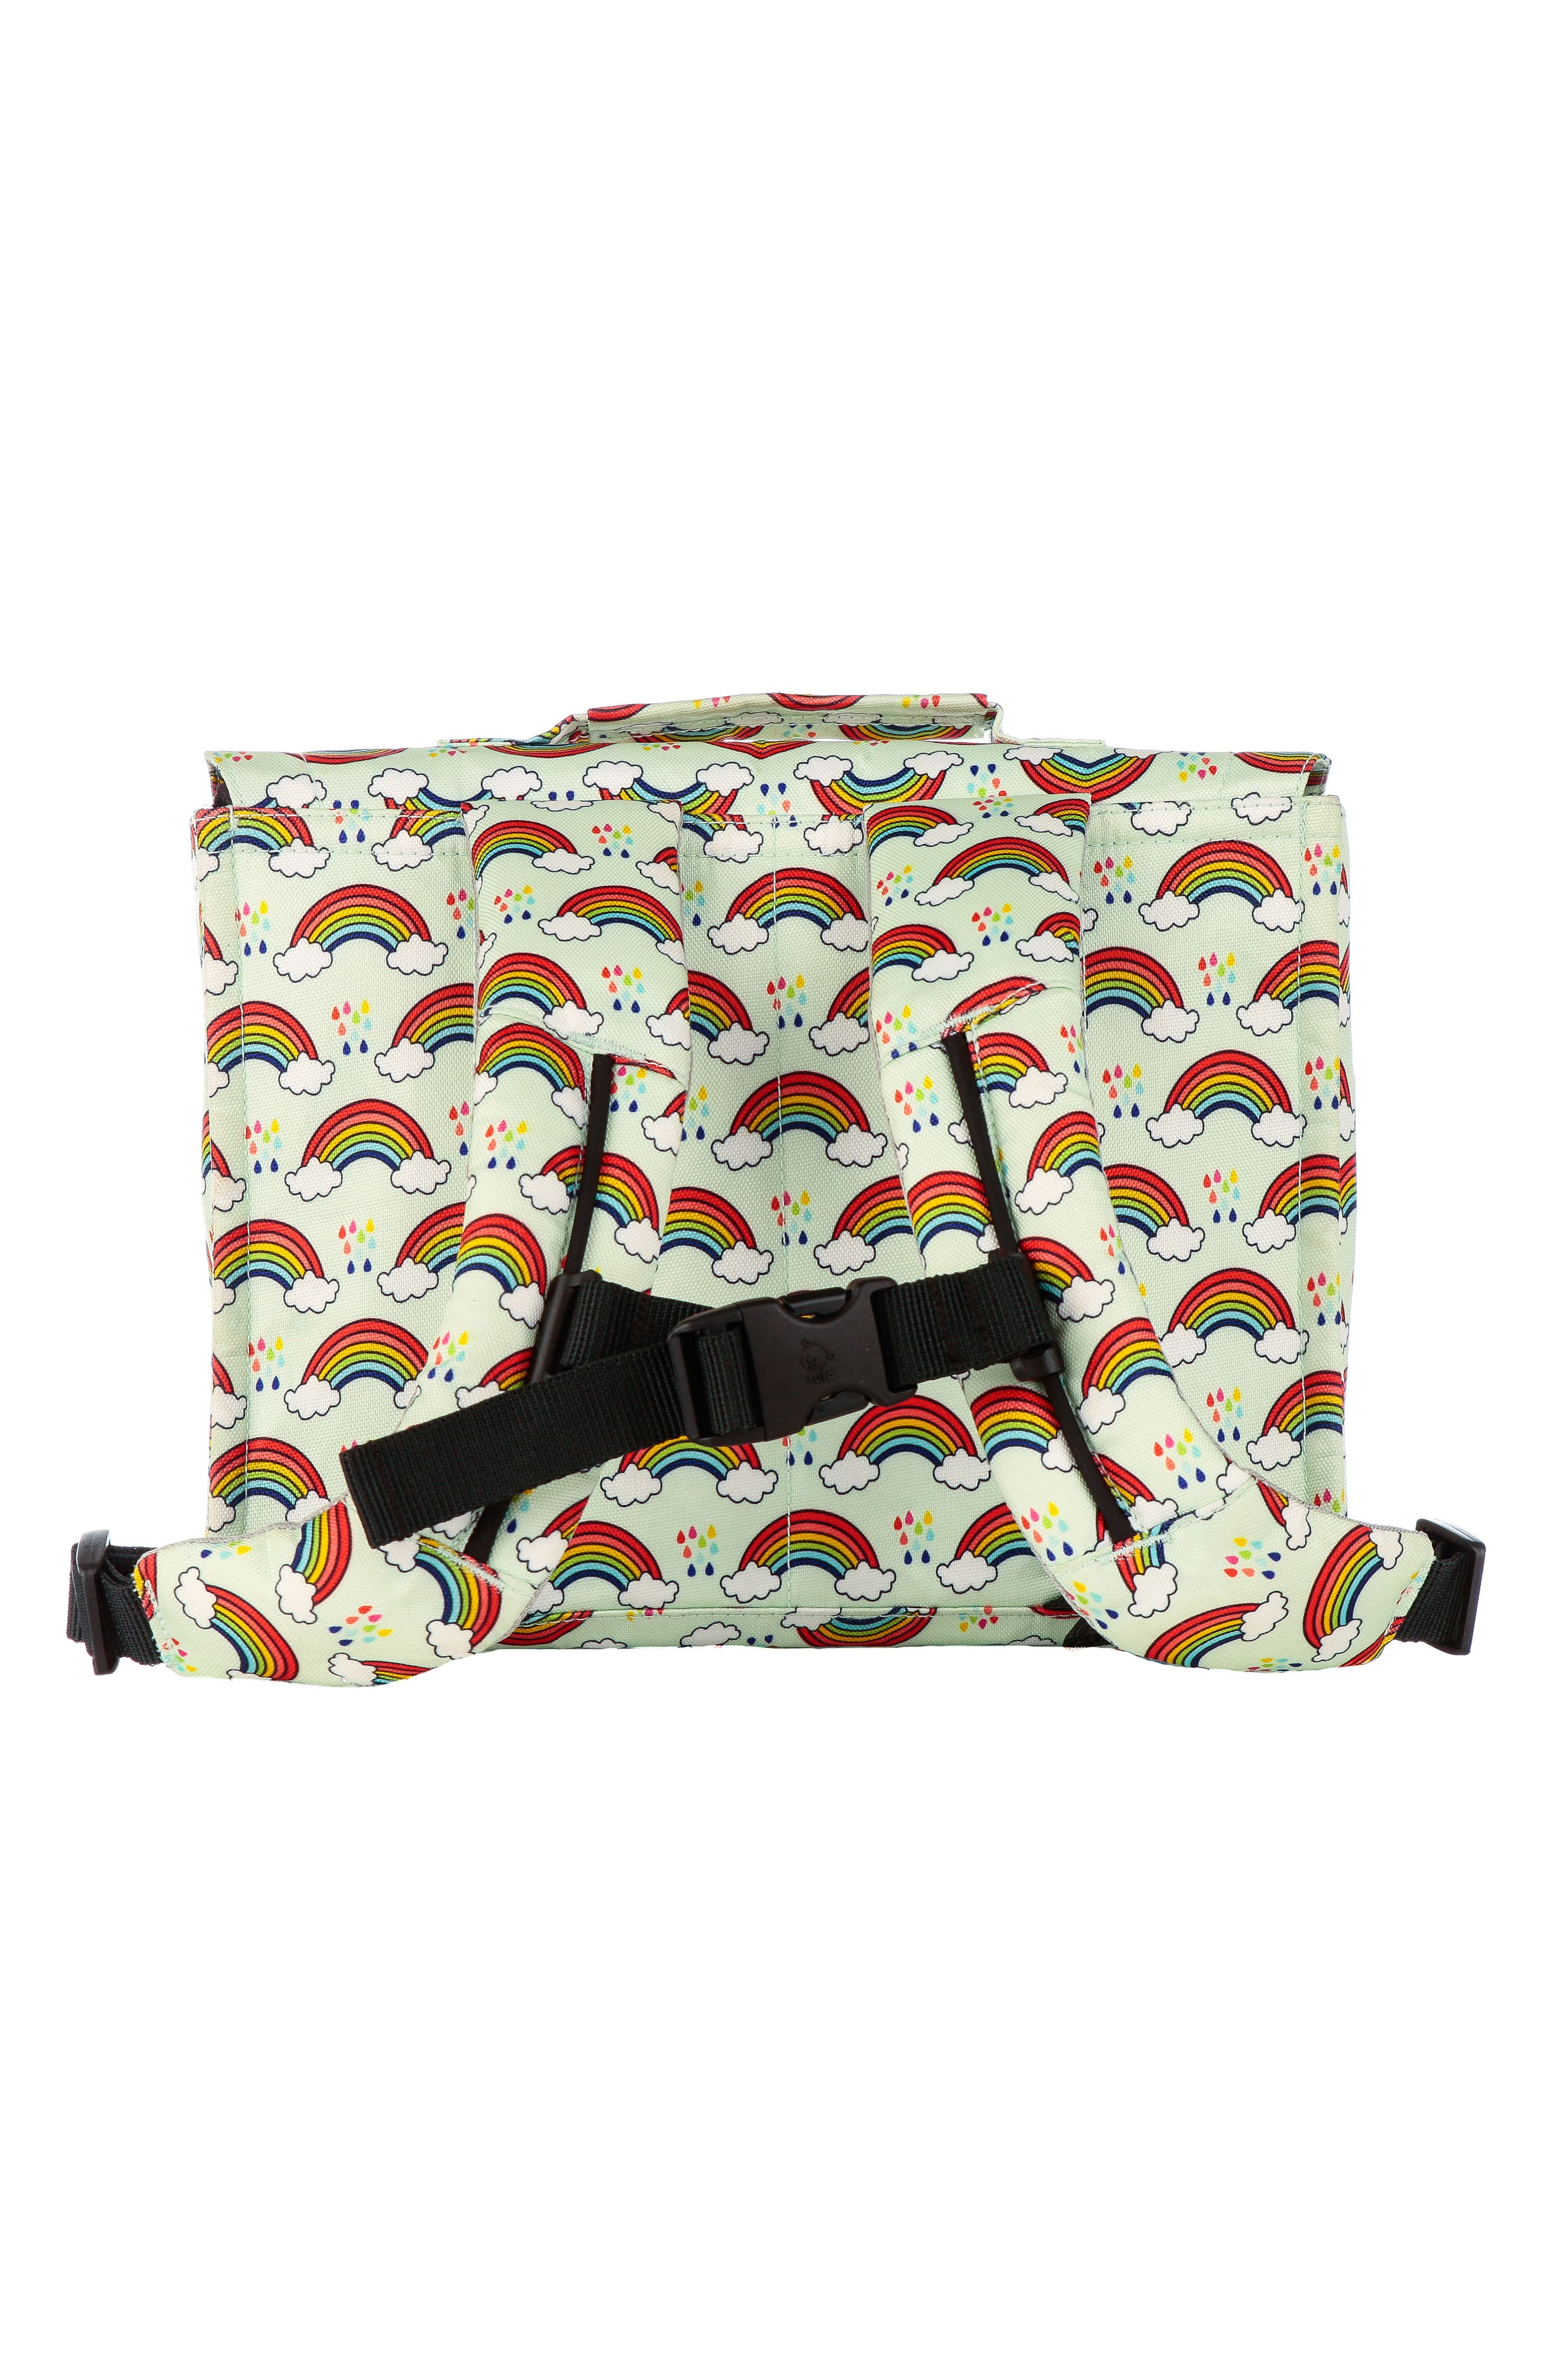 Rainbow Showers Backpack,                             Alternate thumbnail 2, color,                             300